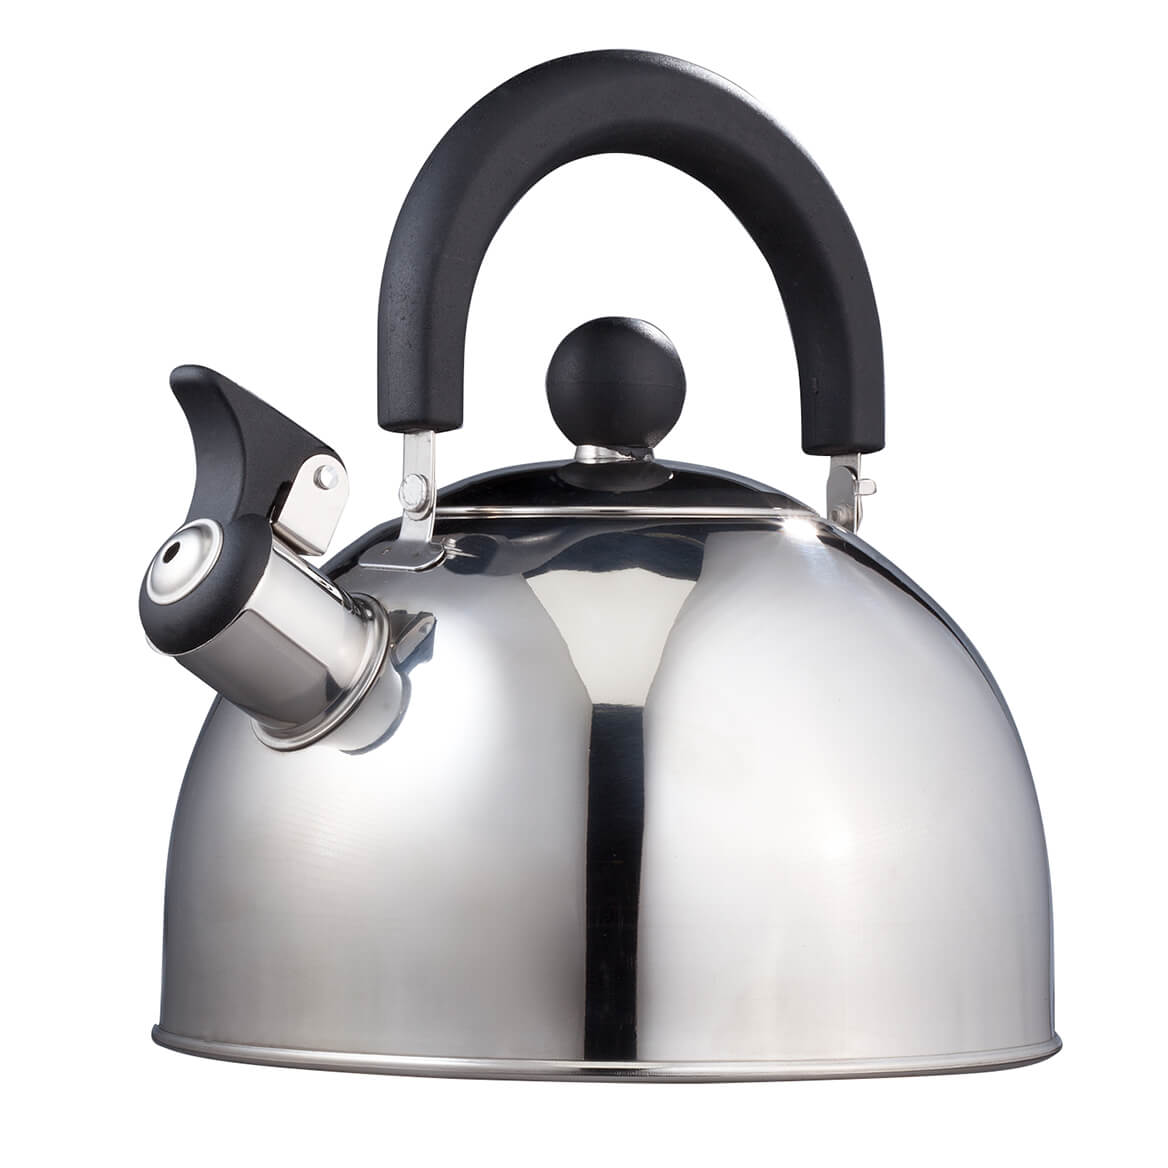 Stainless Steel Whistling Tea Kettle by Home-Style Kitchen™-353542